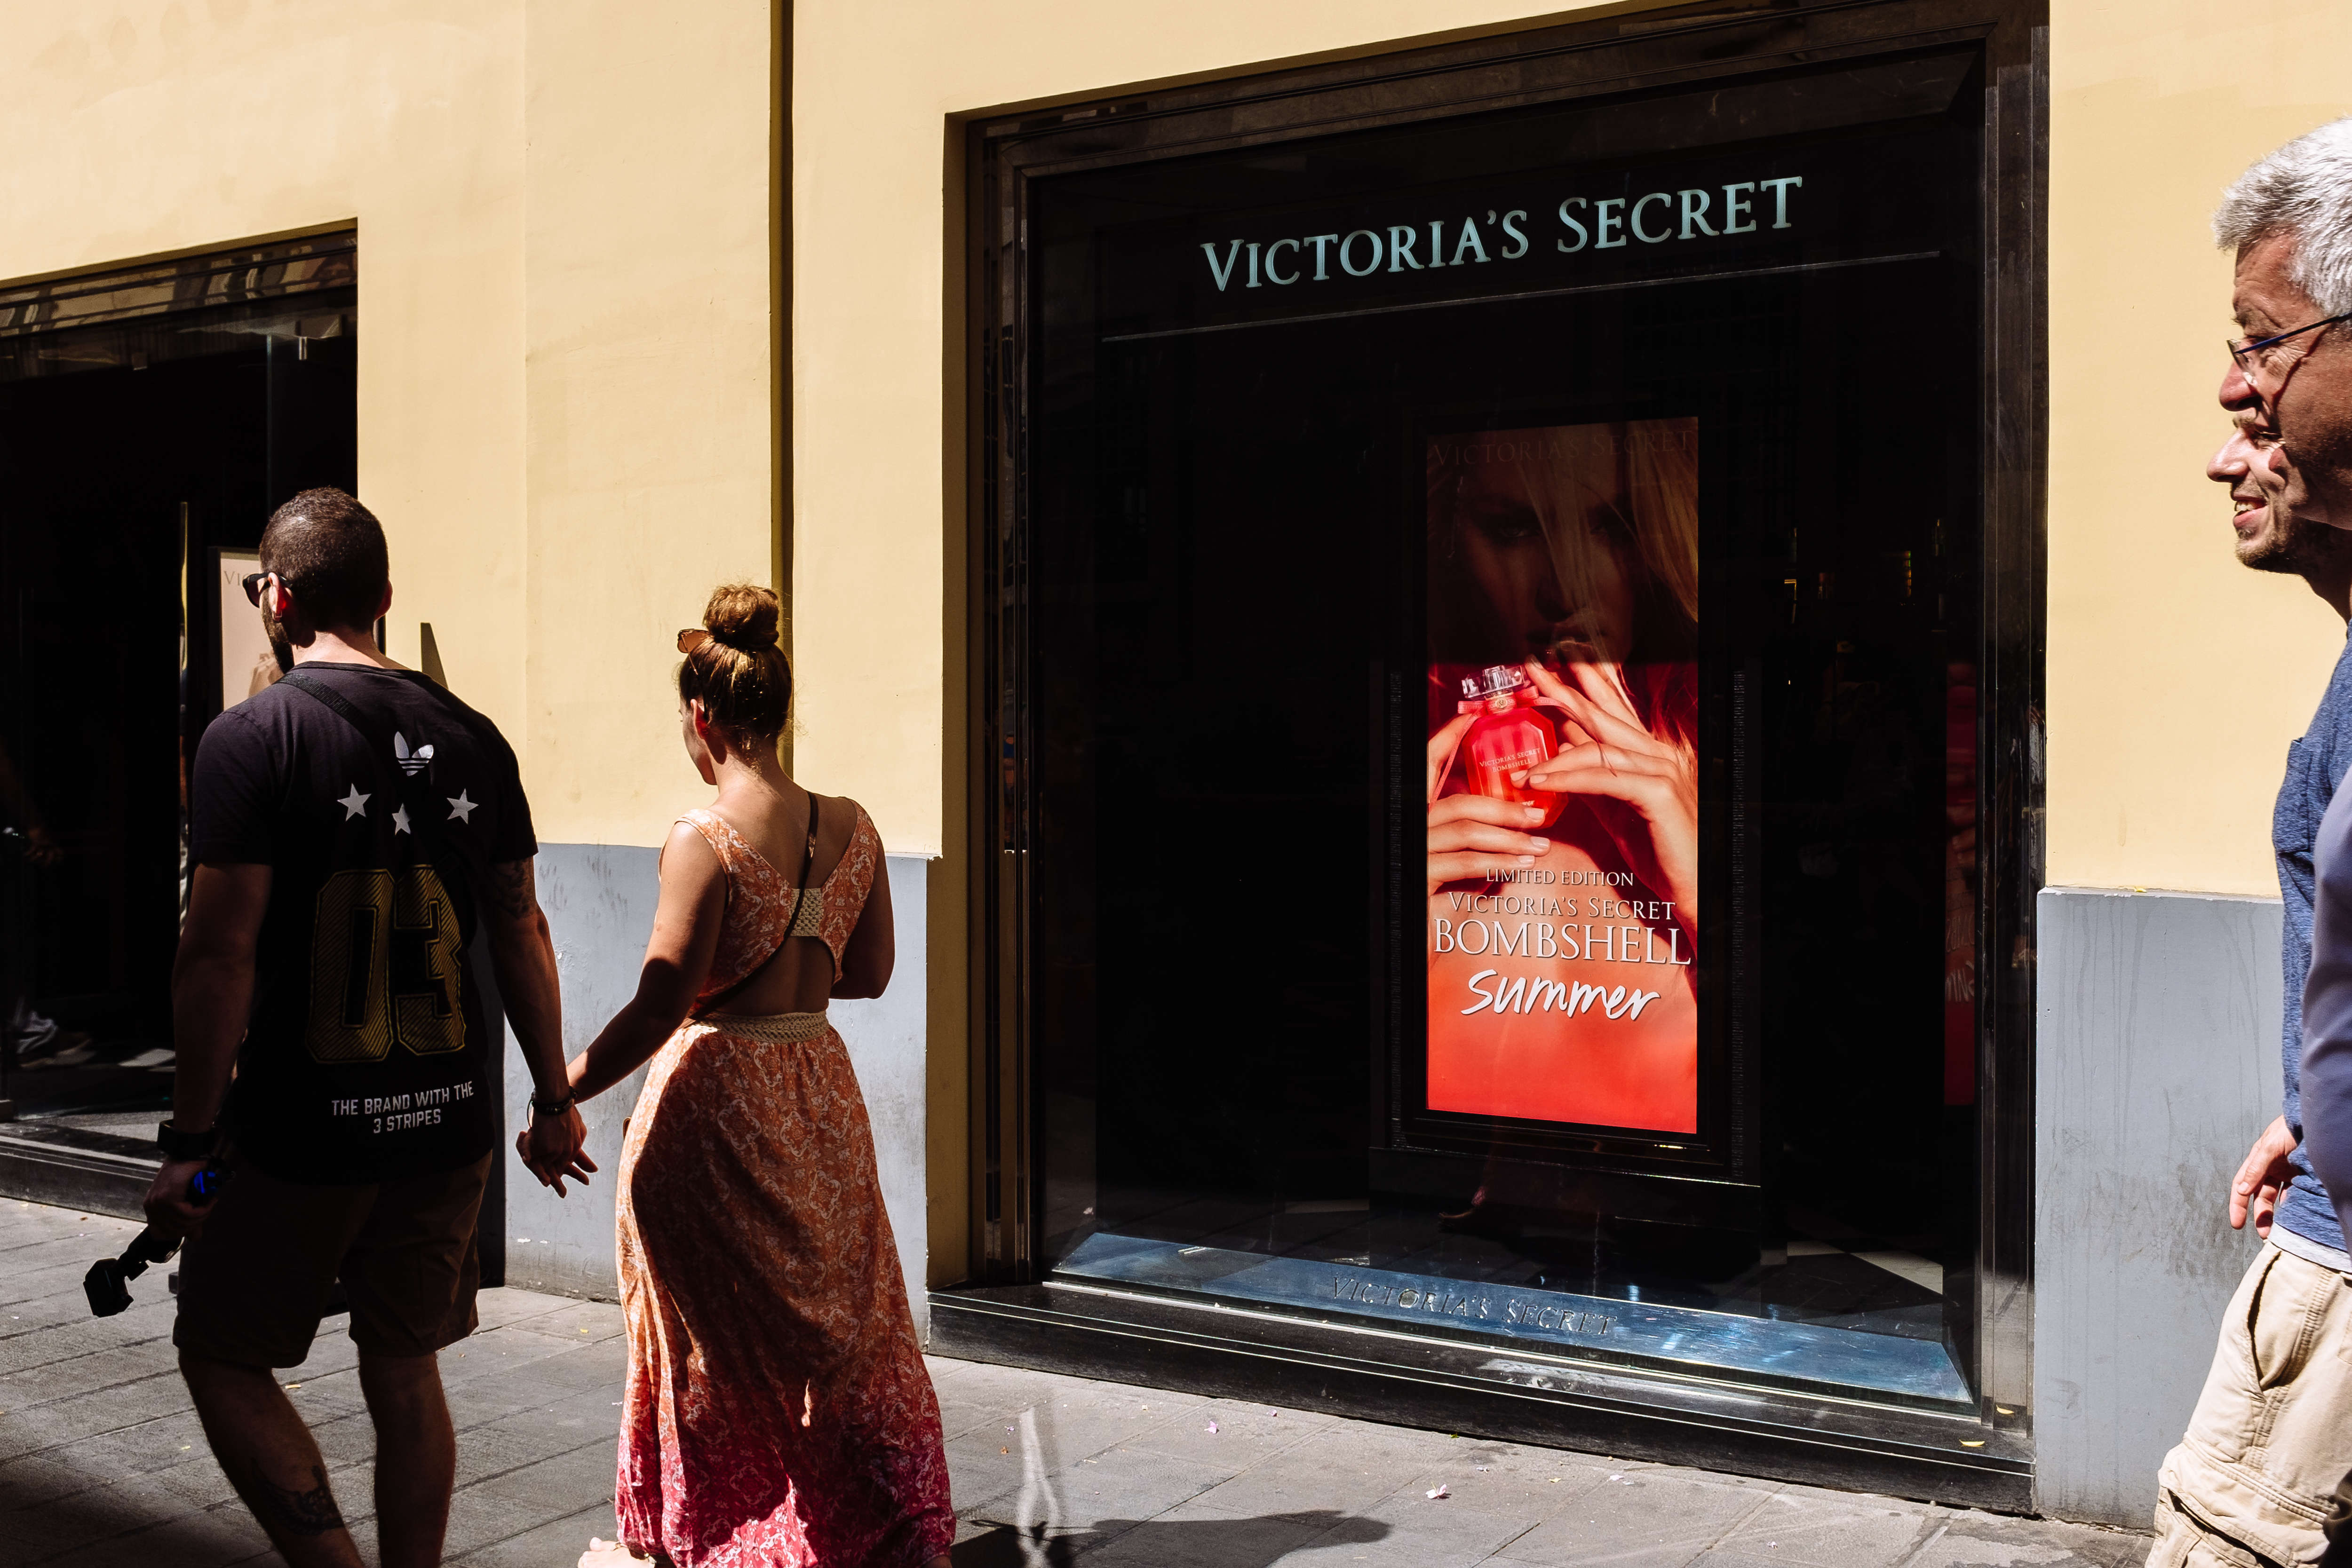 Victoria's Secret is about to be sold after years of scandal and slumping sales